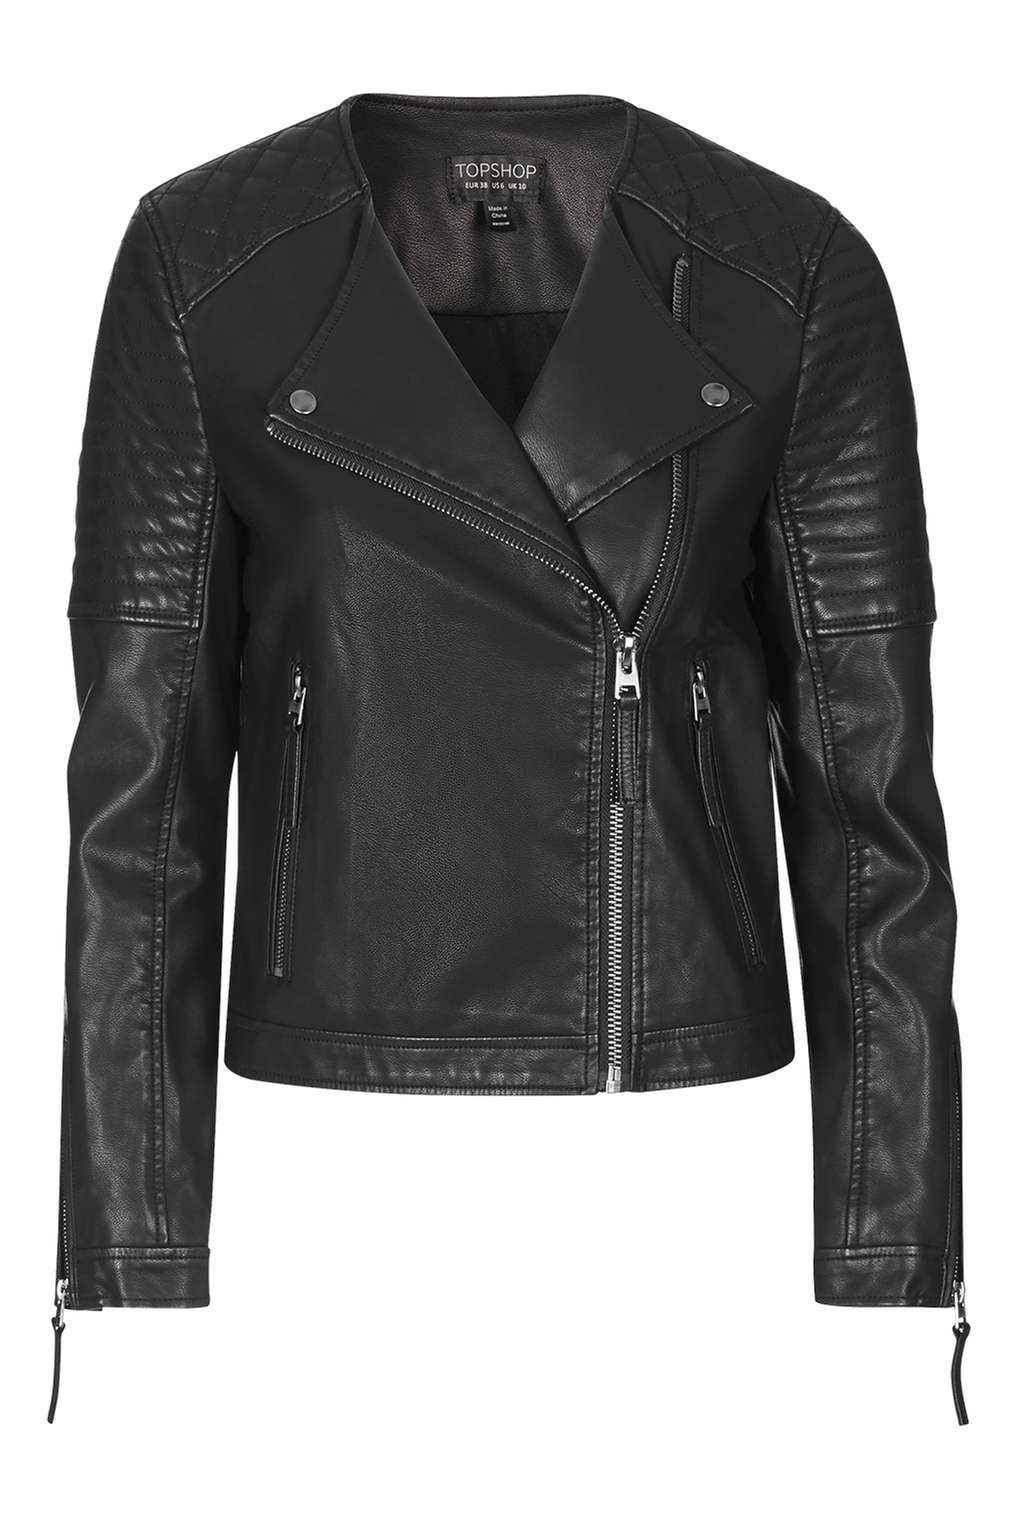 Leather jacket cost - Leather Jacket Cost 0